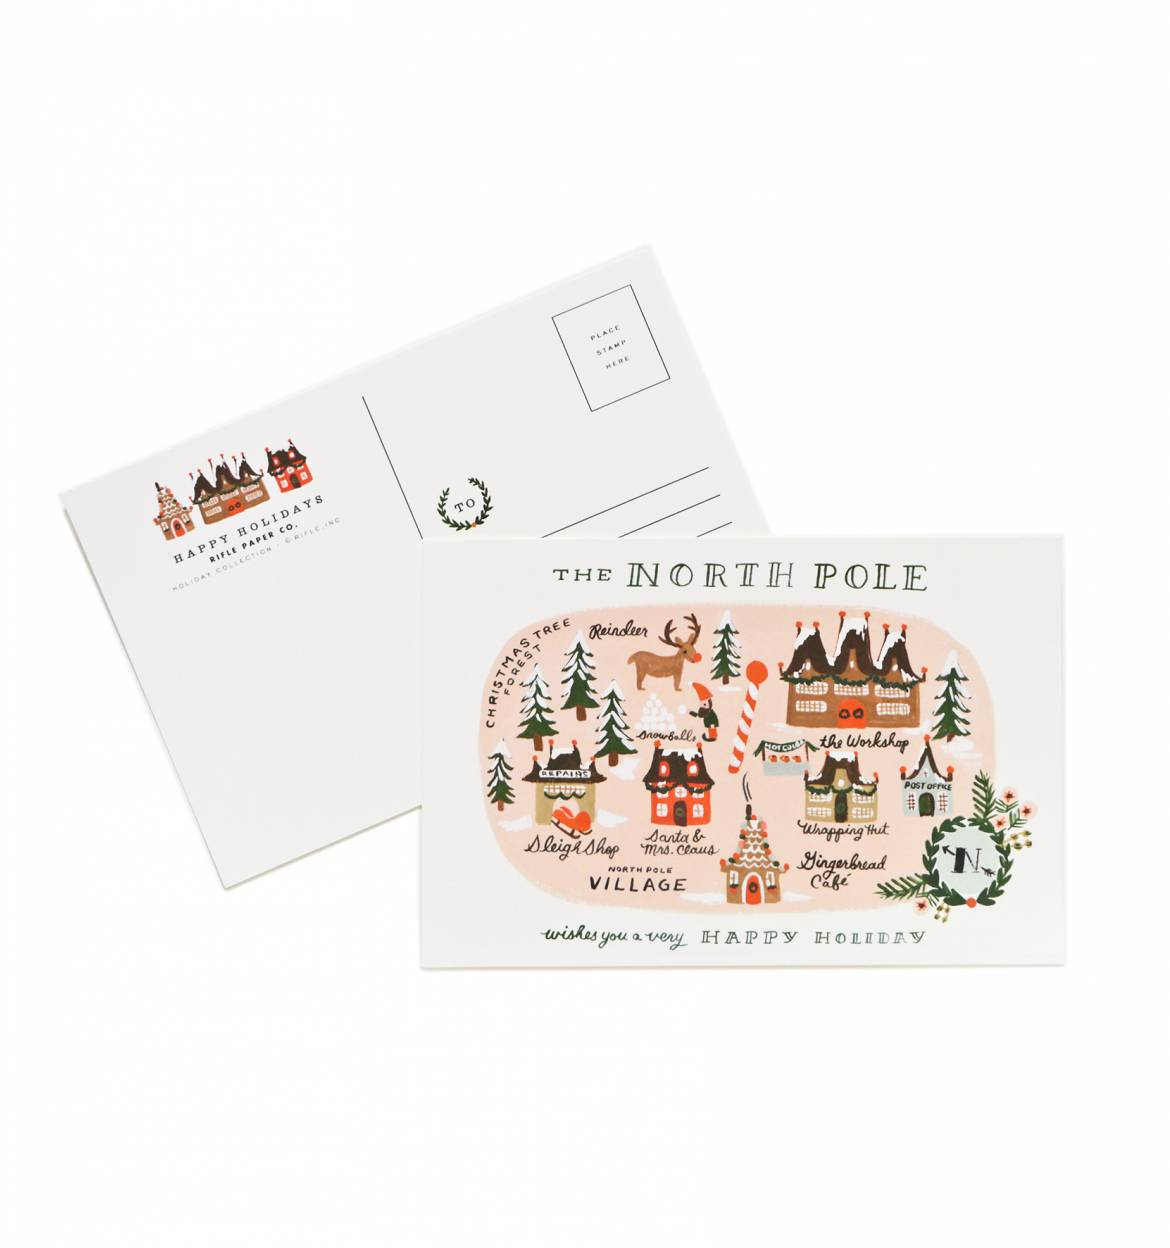 rifle-paper-co-north-pole-map-postcard-01-n